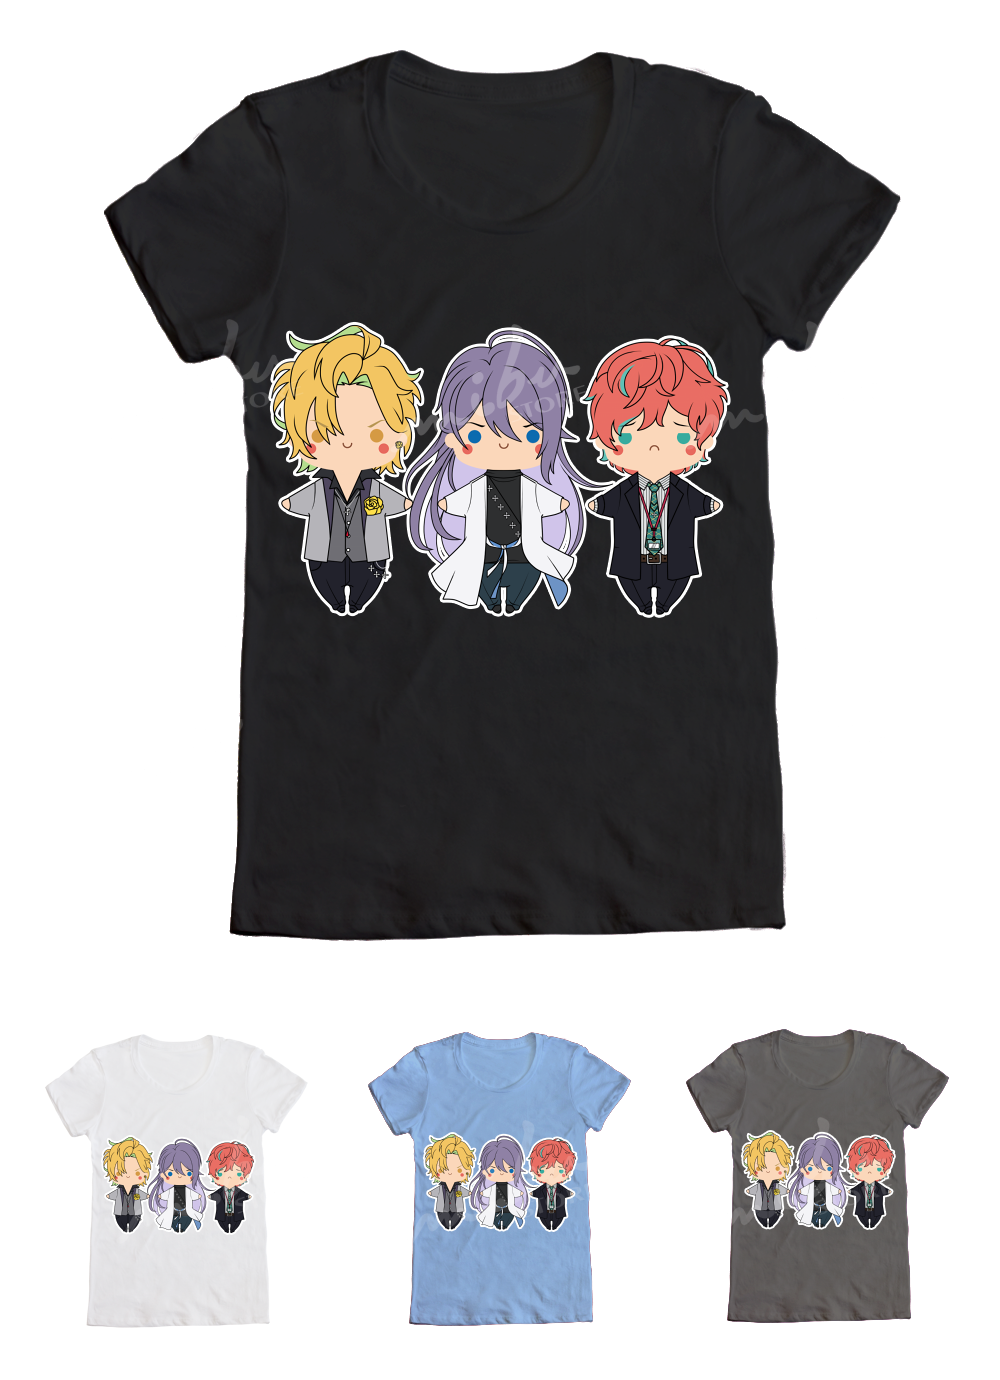 Hypnosis Mic - Matenrou - T-Shirt from MibuStore Anime